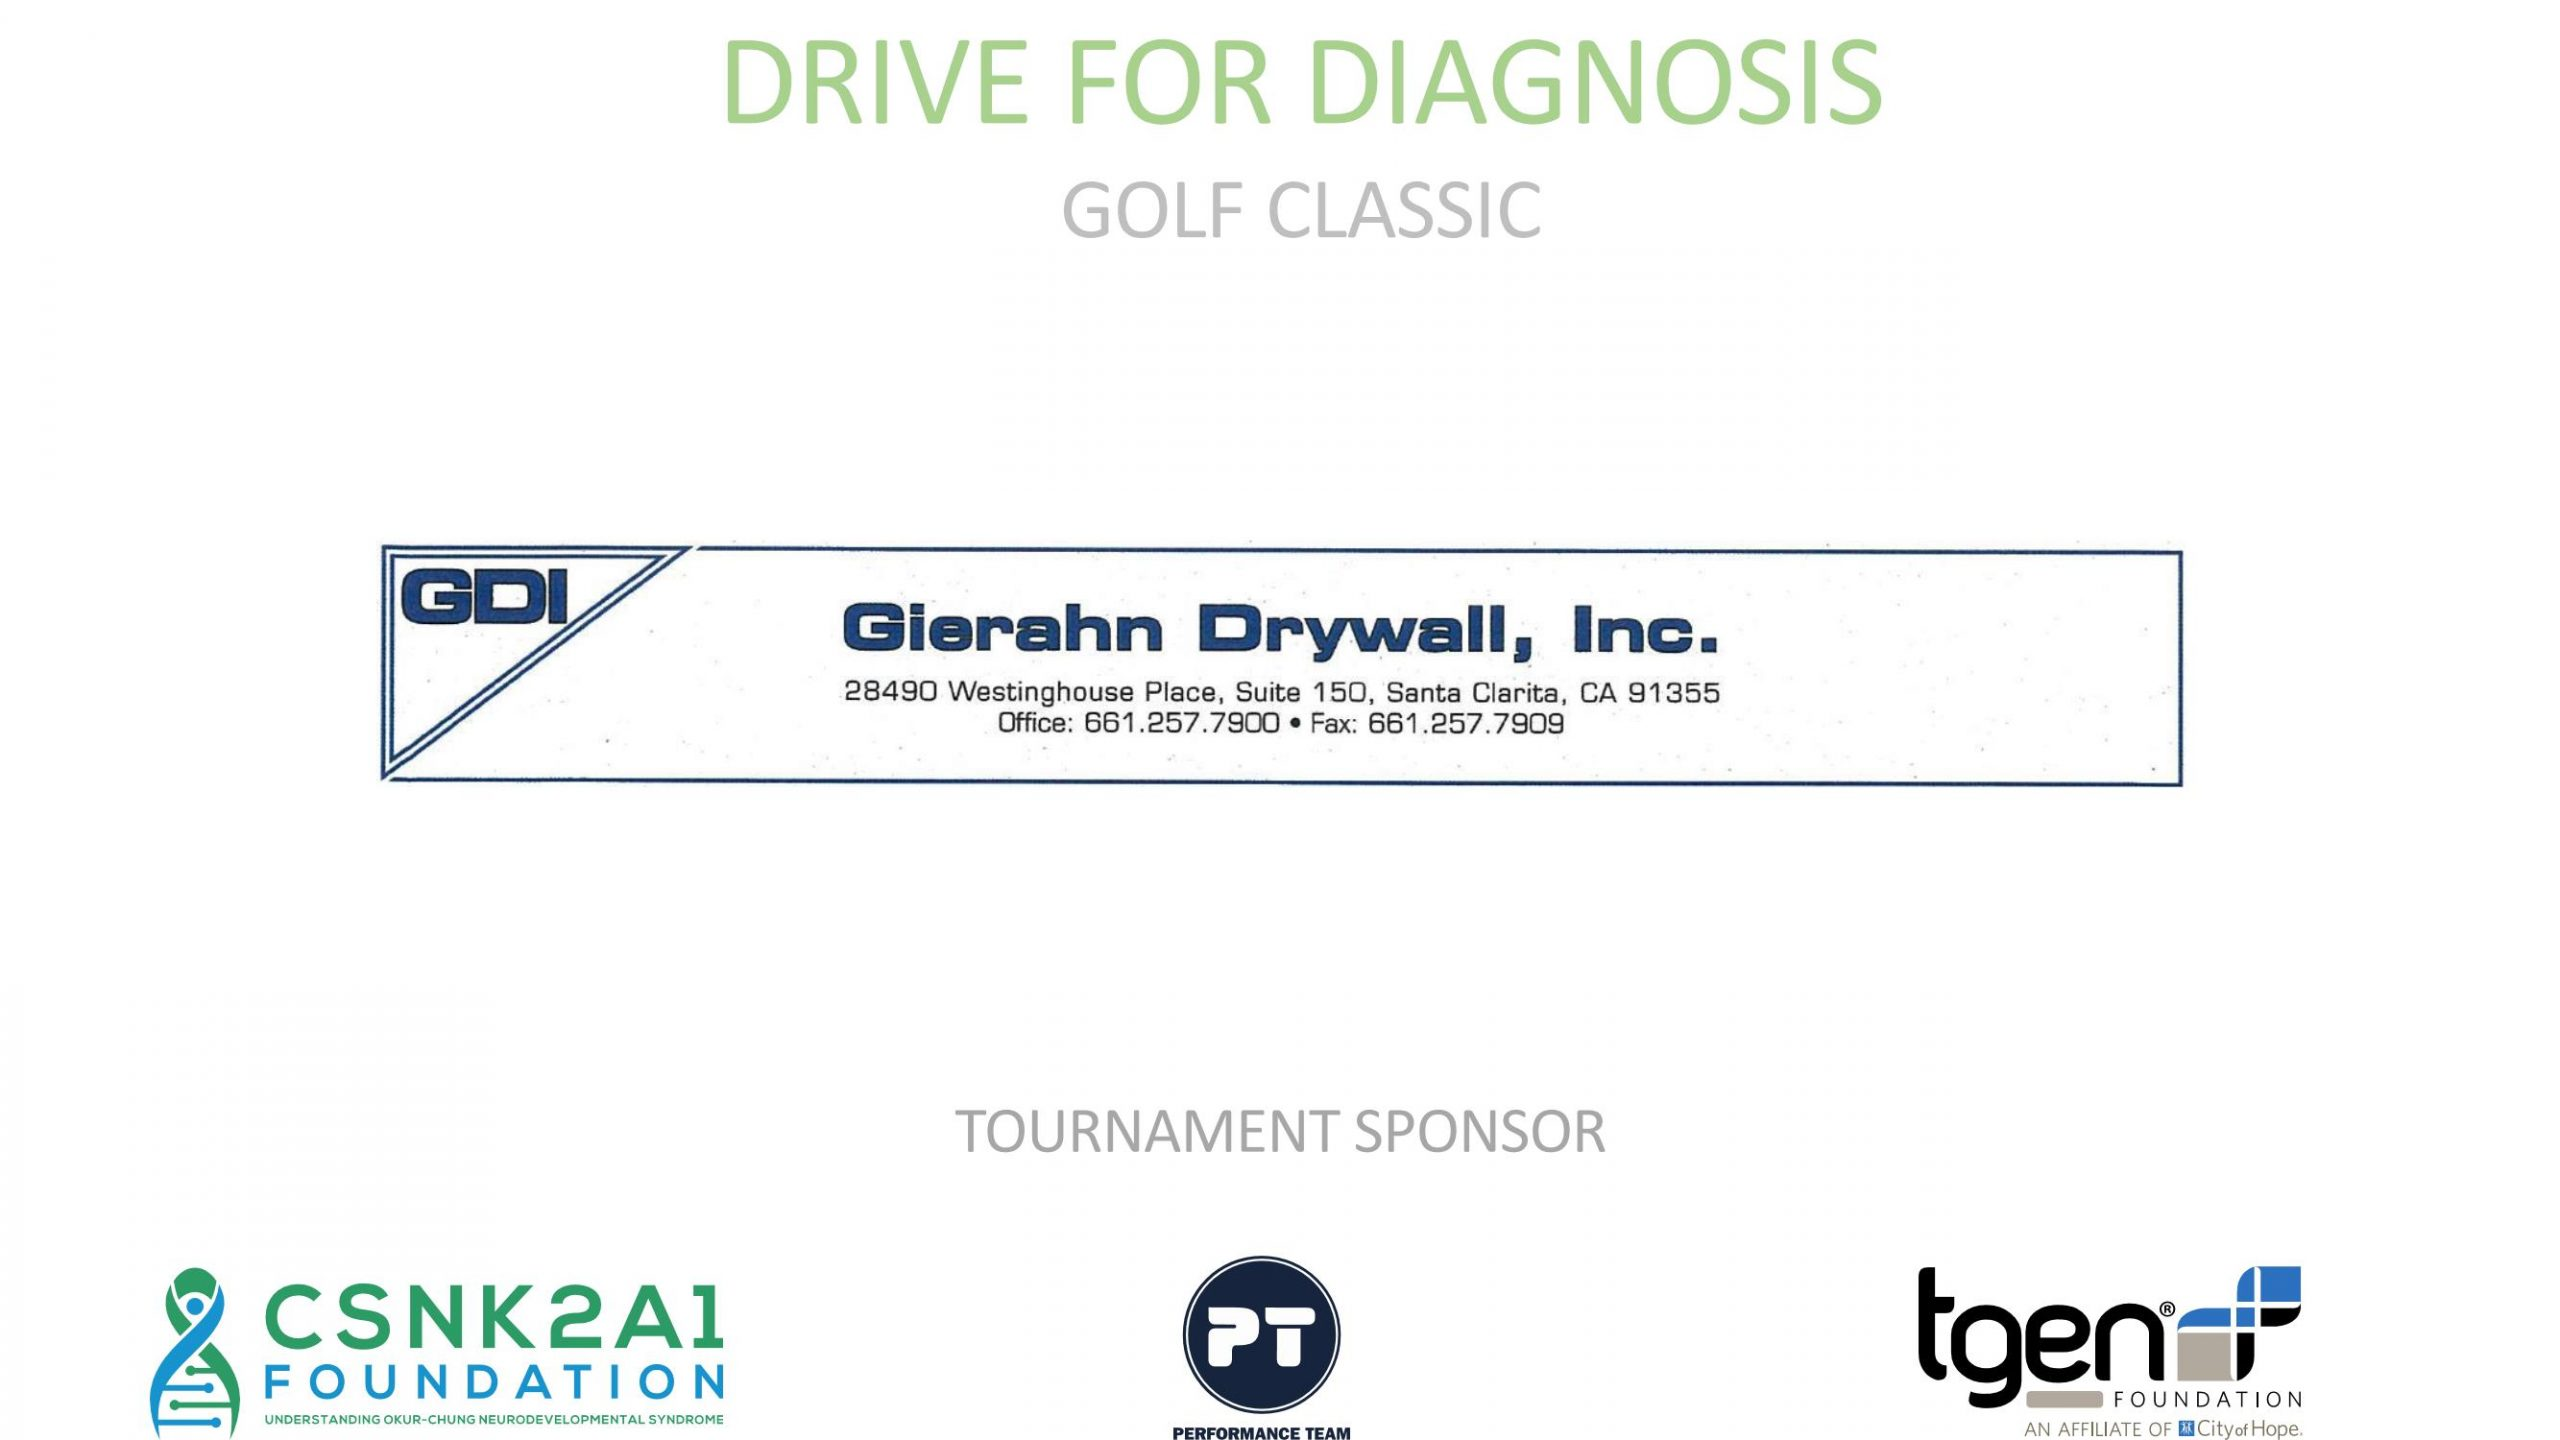 Tournament Sponsor - Gierahn Drywall, Inc.